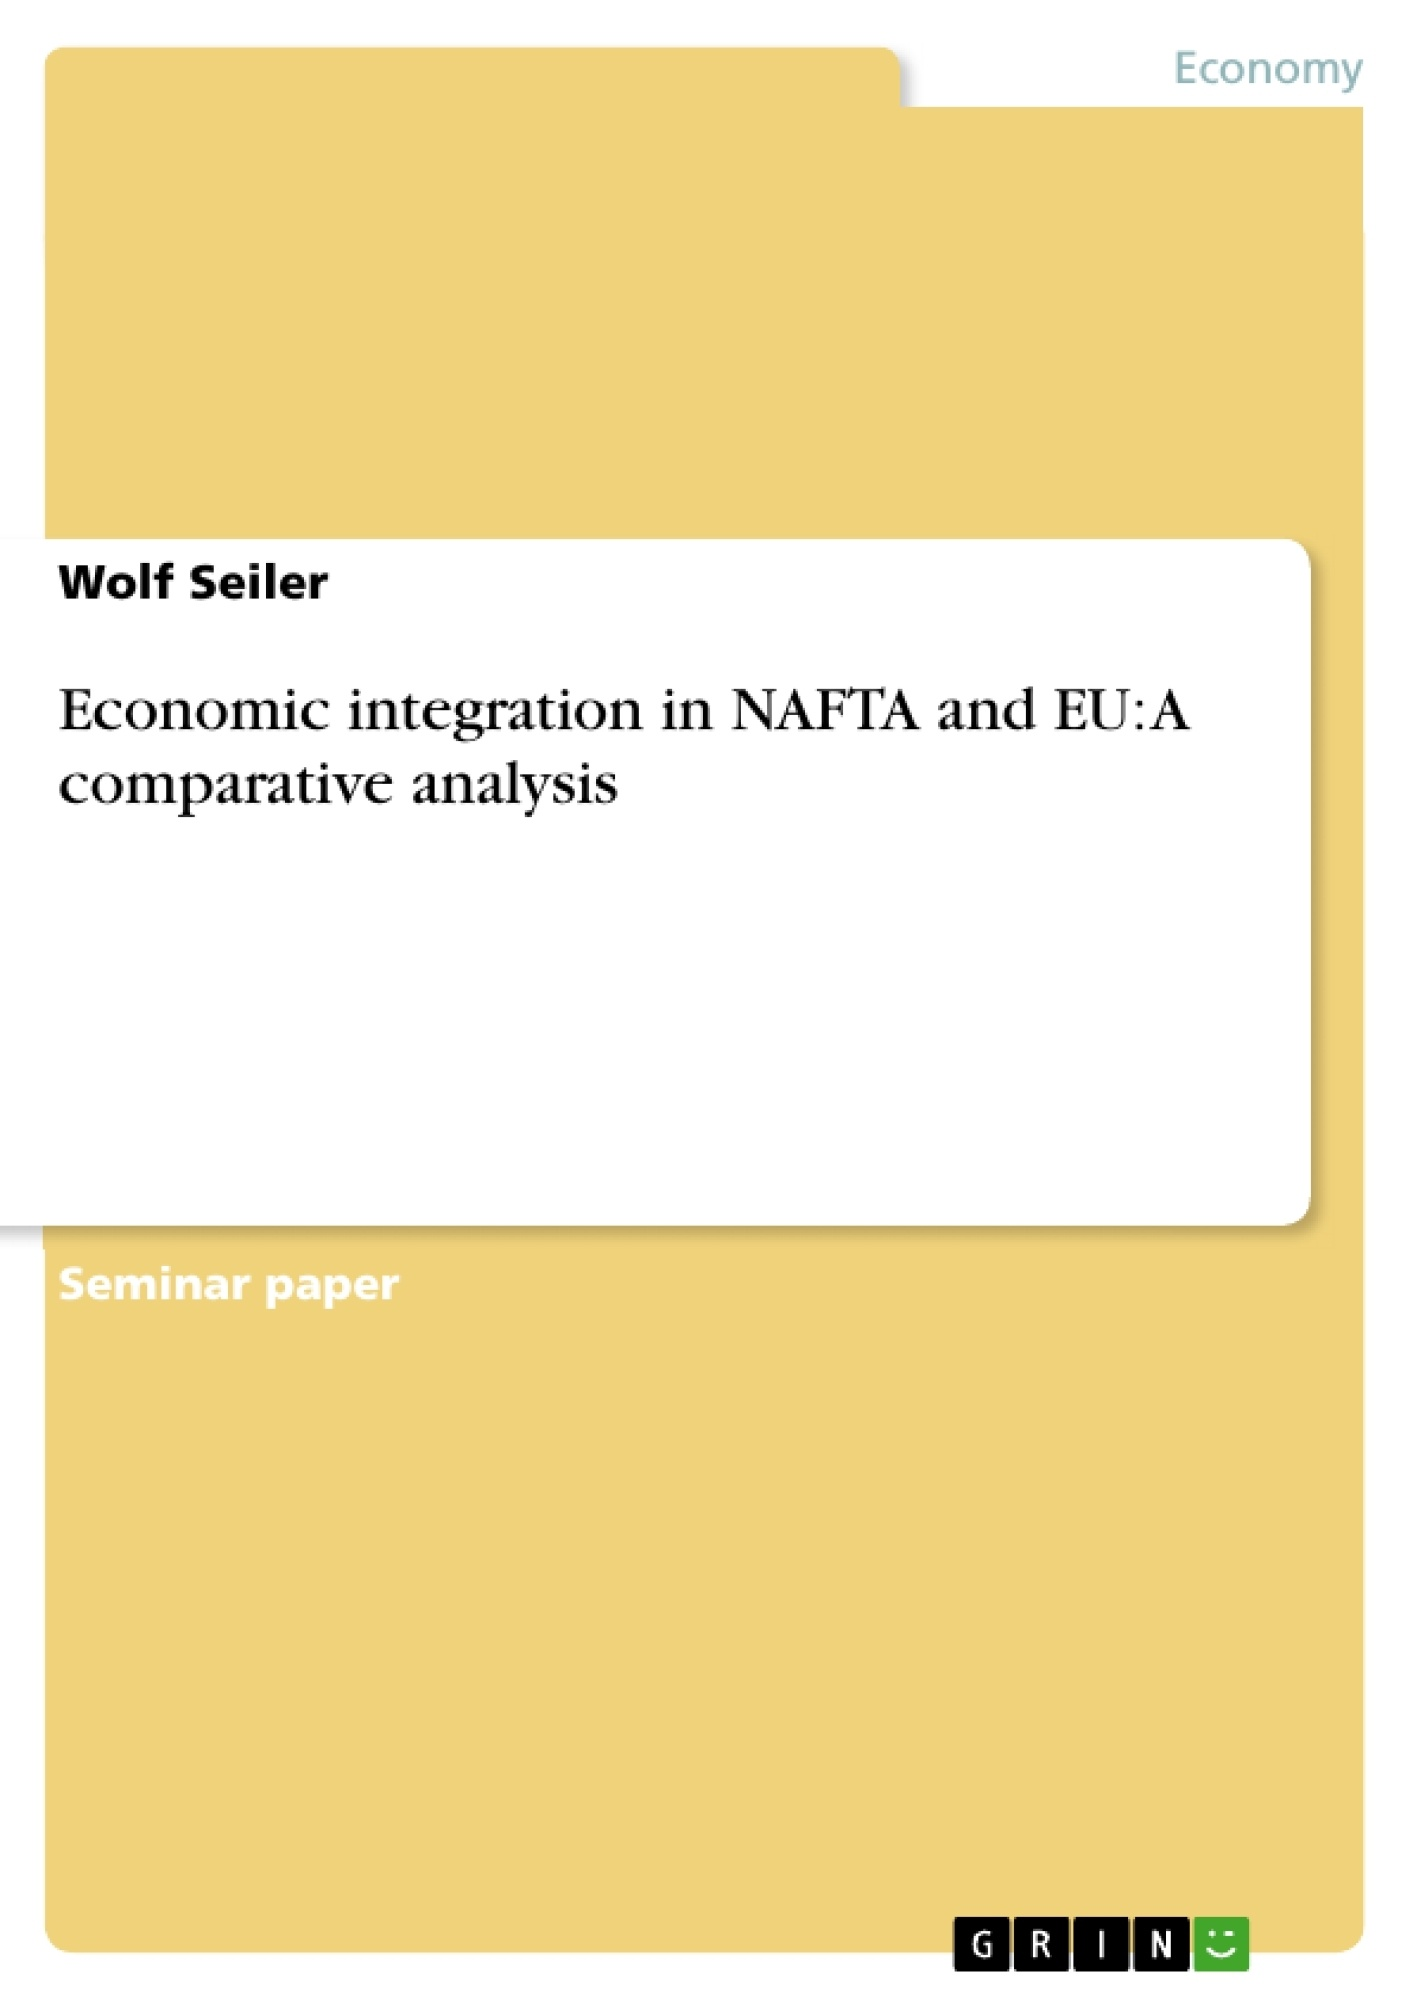 Title: Economic integration in NAFTA and EU: A comparative analysis